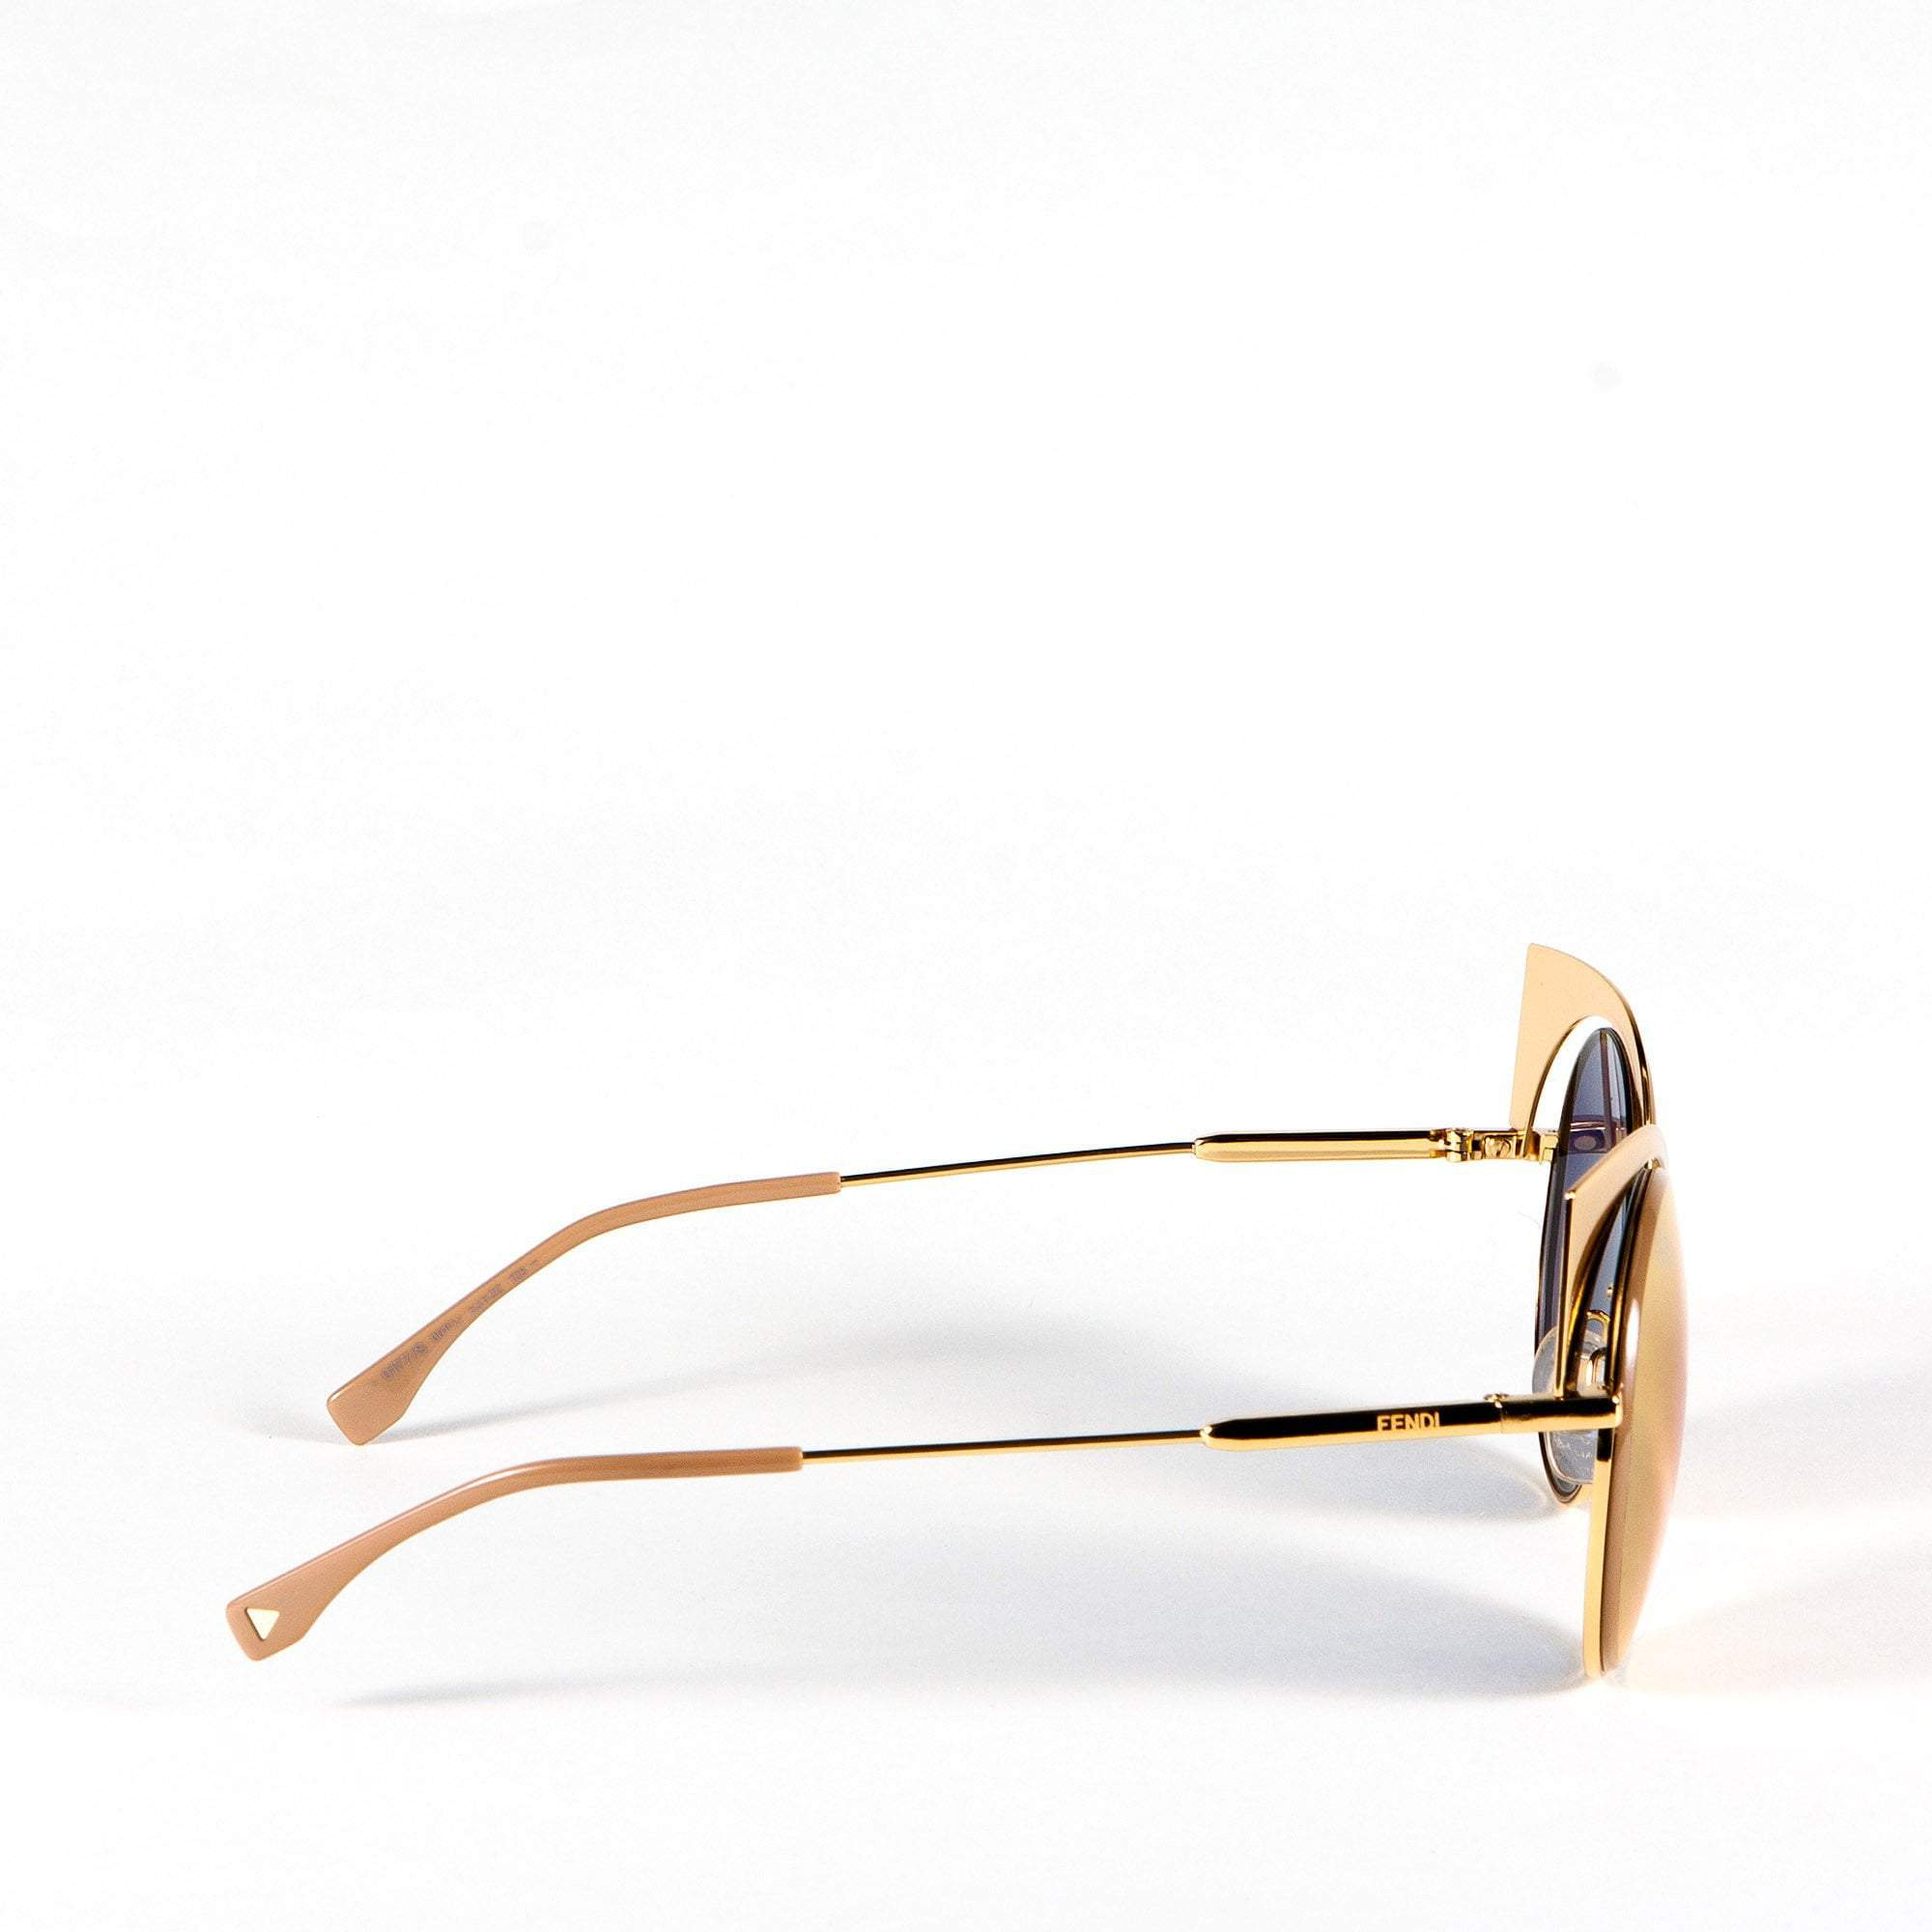 Fendi Gold-Tone 0177 Sunglasses